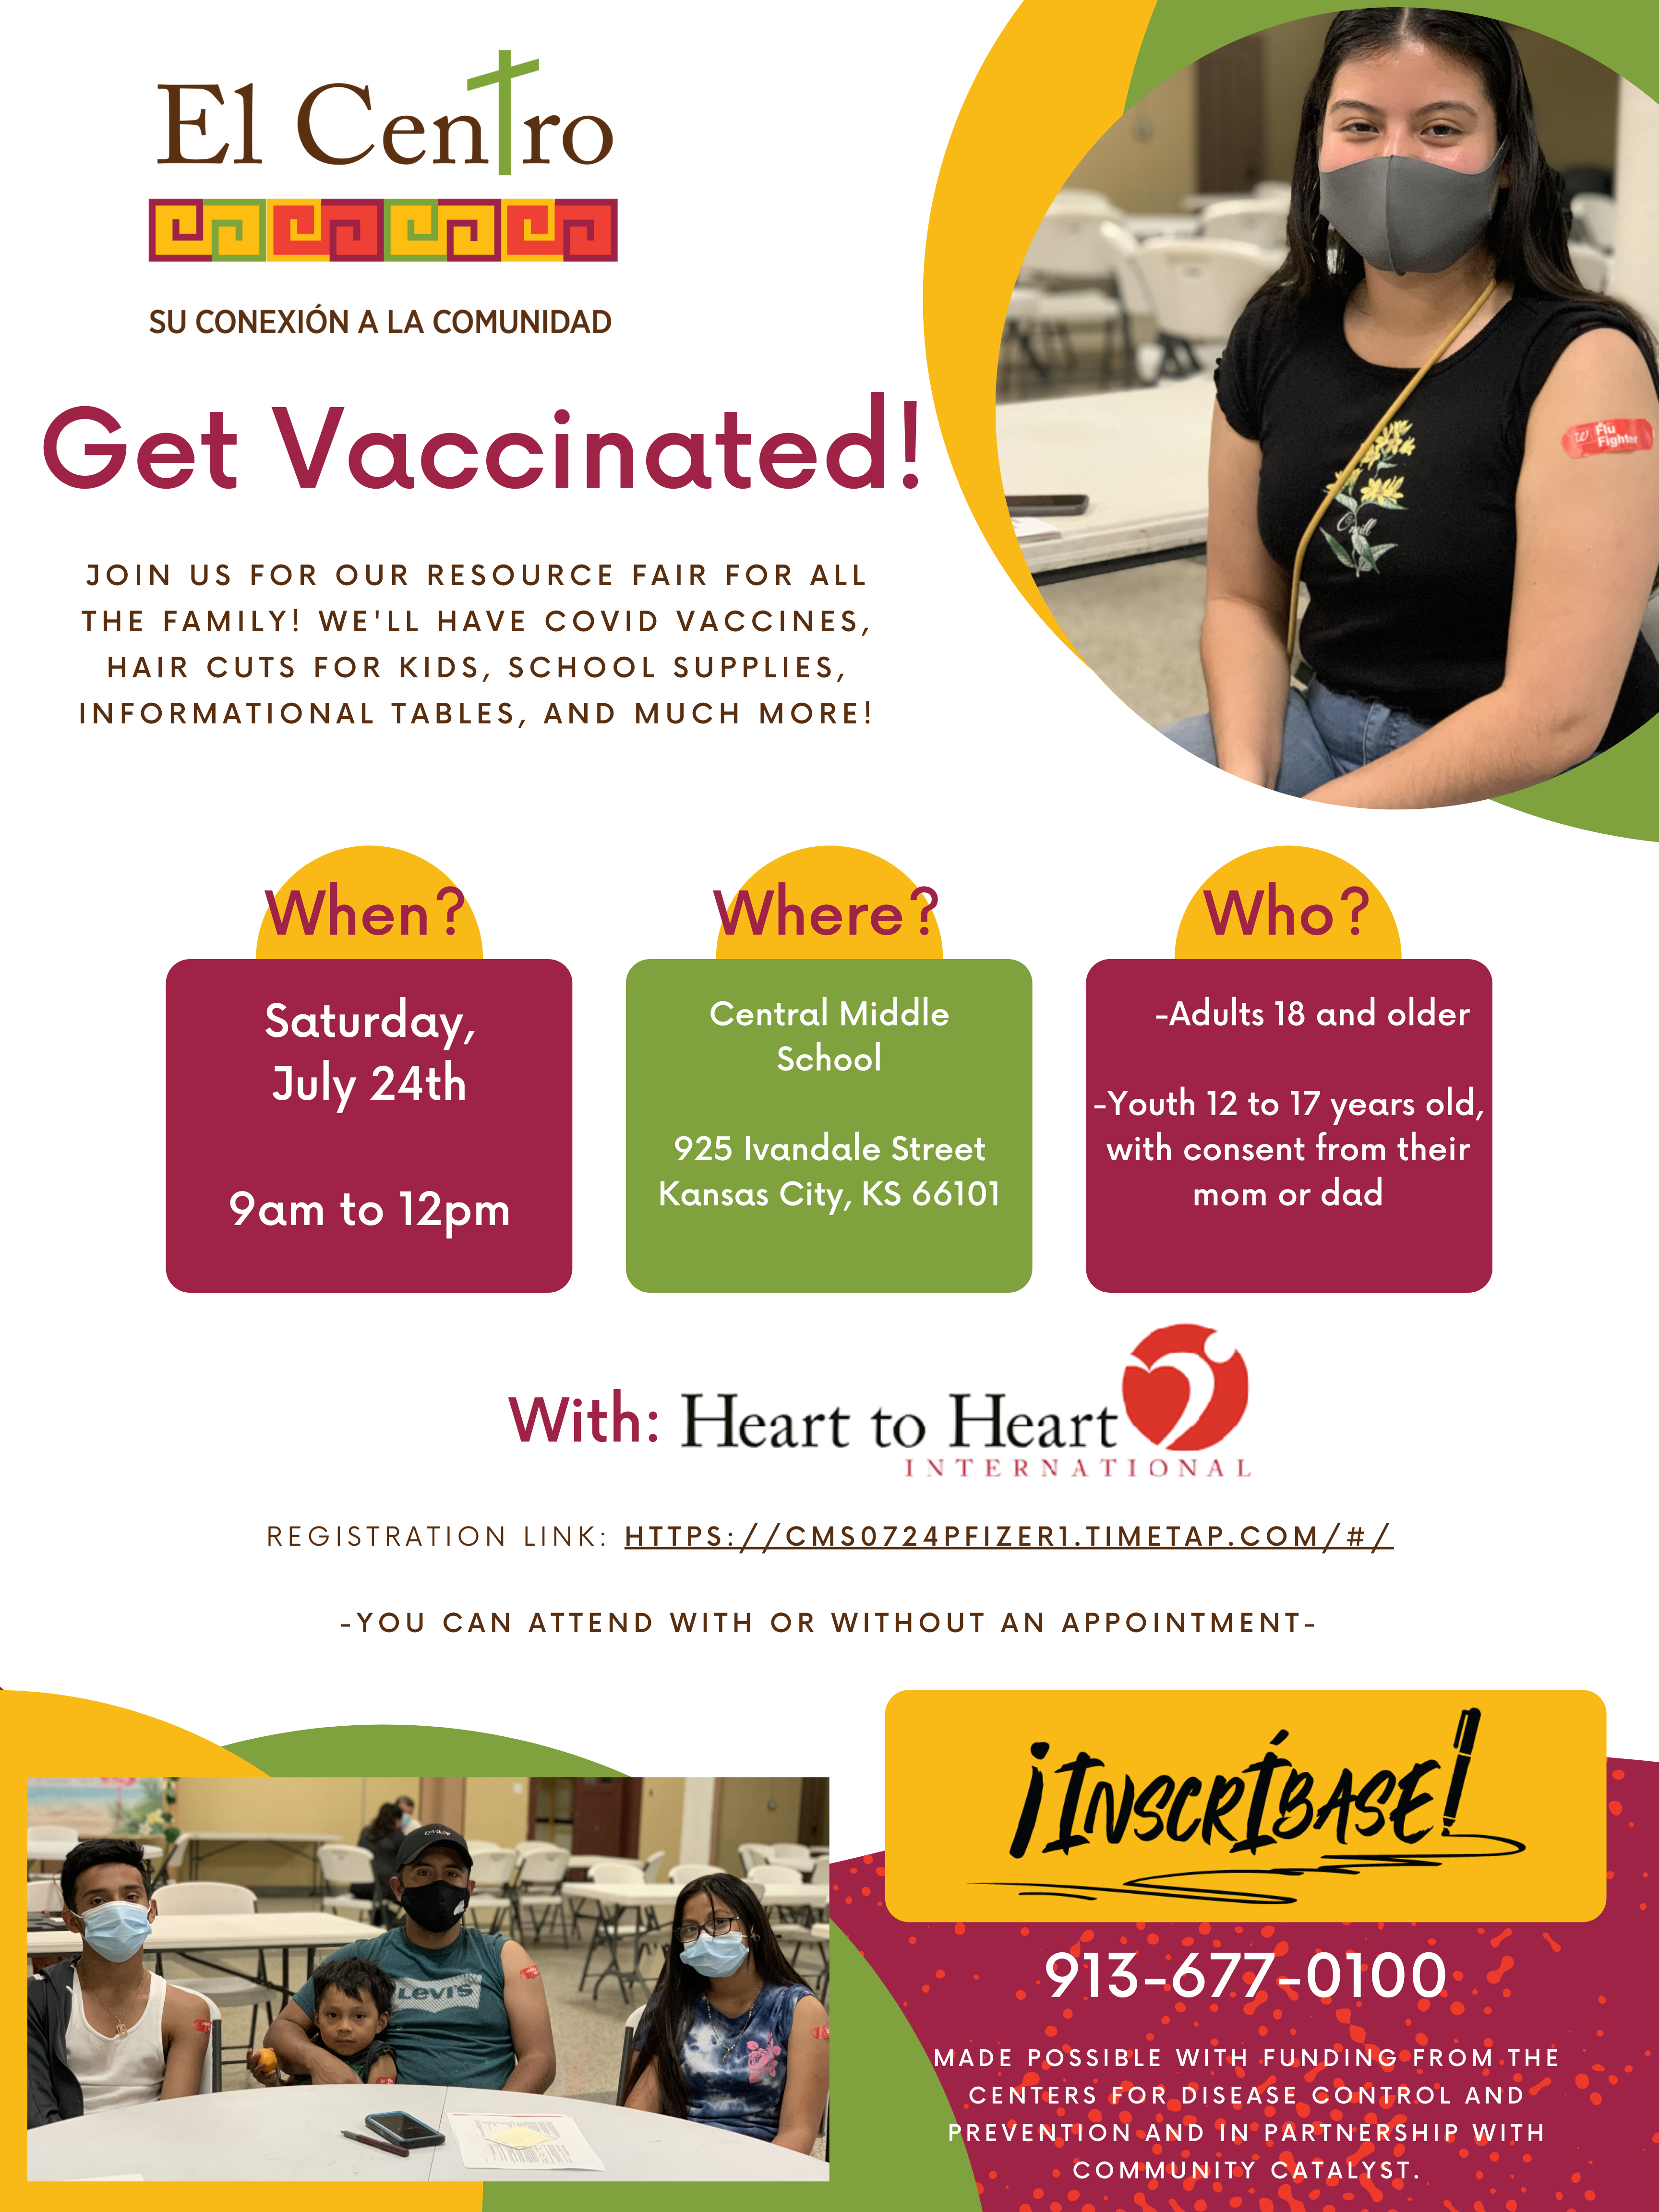 Vaccination info